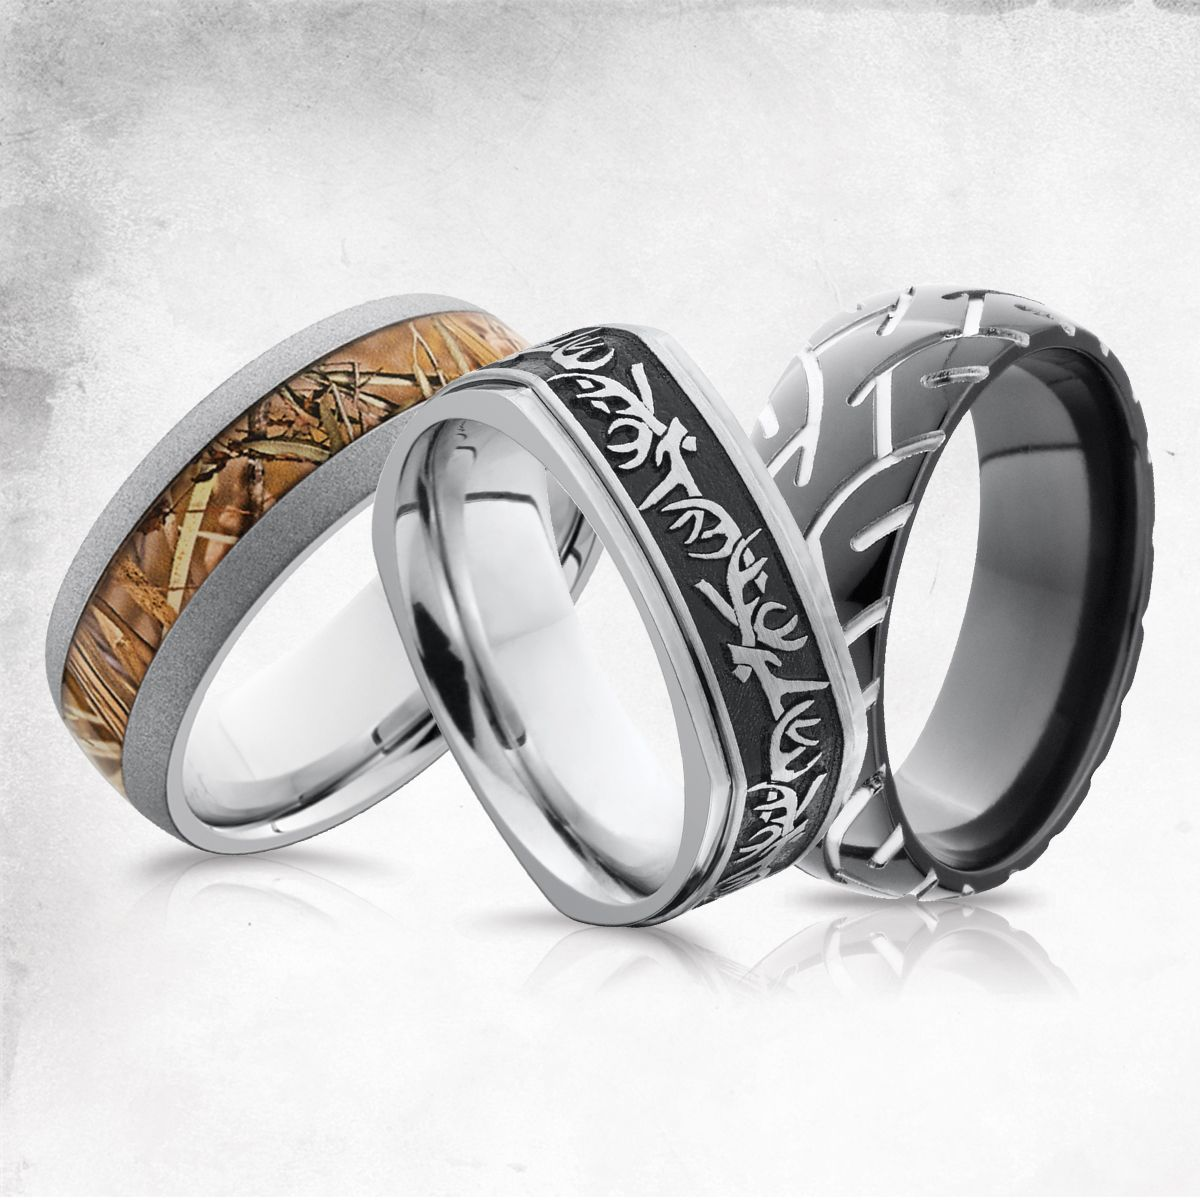 hunting, camo, and tire tracks men's wedding bands - men's wedding